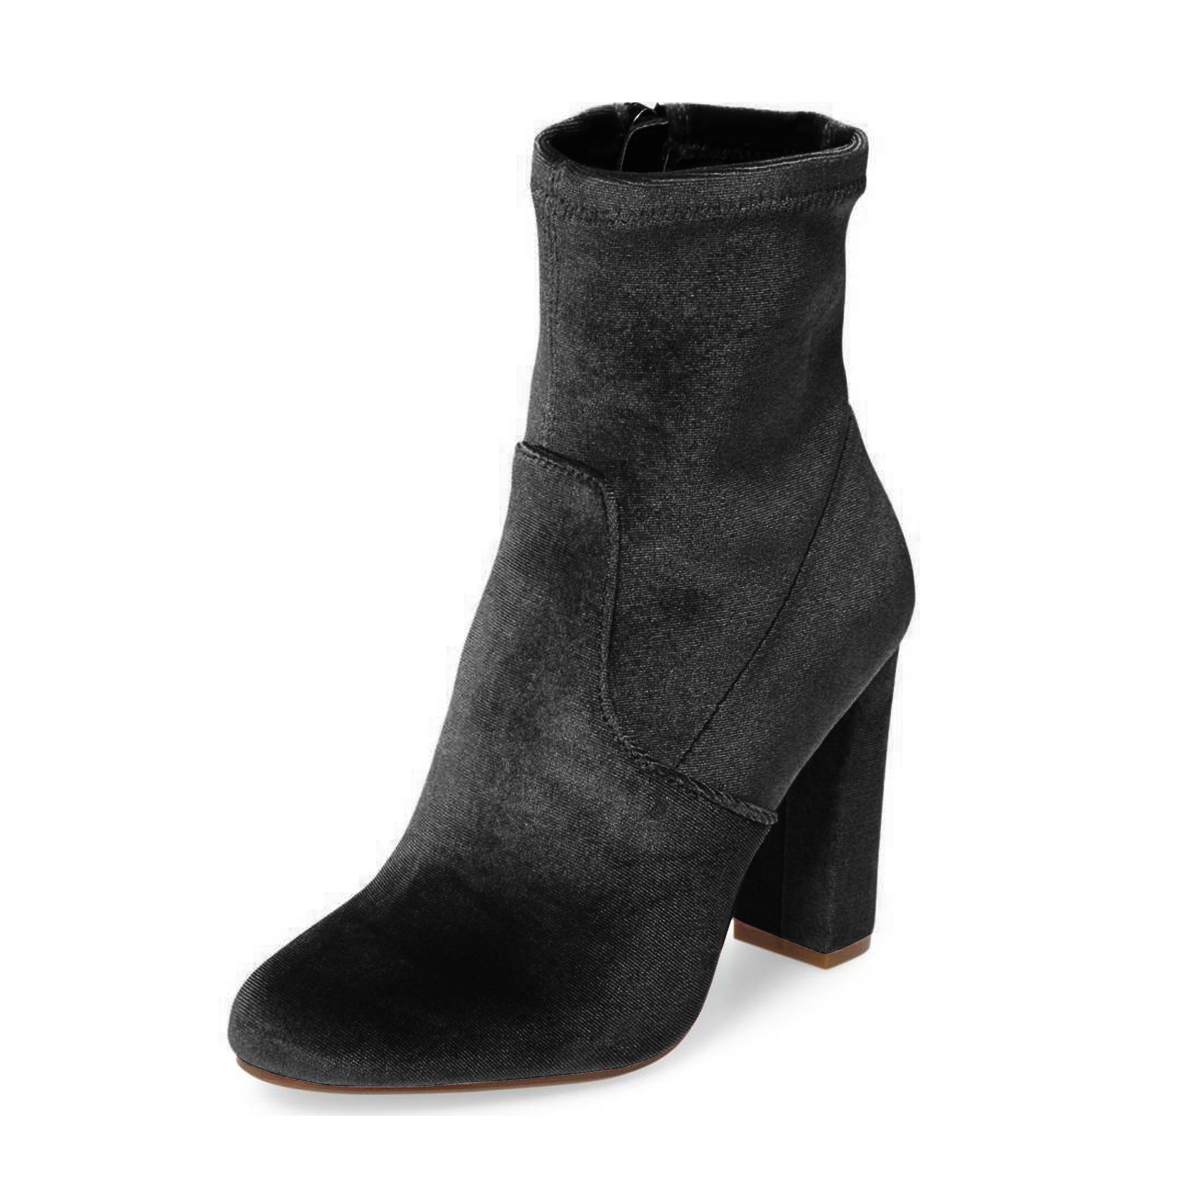 Women's Grey Suede Pointed Toe Ankle Chunky Heel Boots